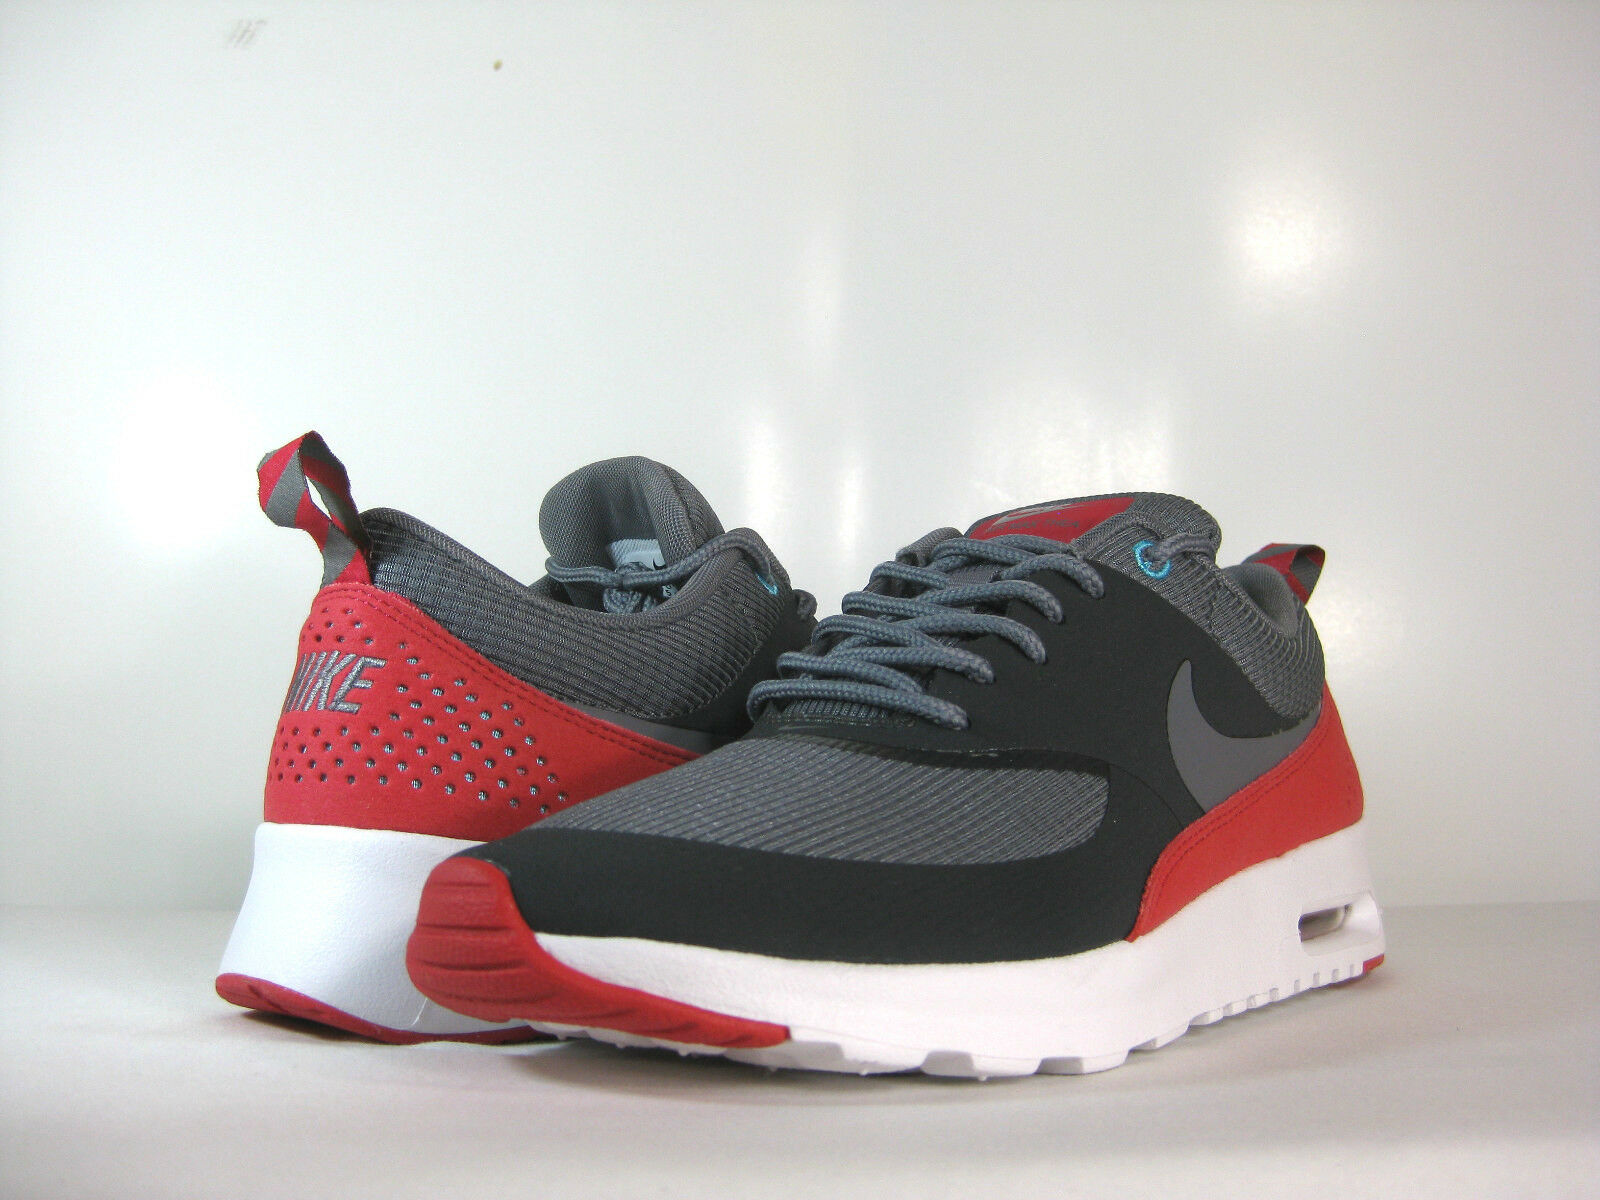 NIKE WMNS AIR MAX THEA Anthracite/Cool Grey-Lgn Red -599409 009- ATHLETIC Wild casual shoes